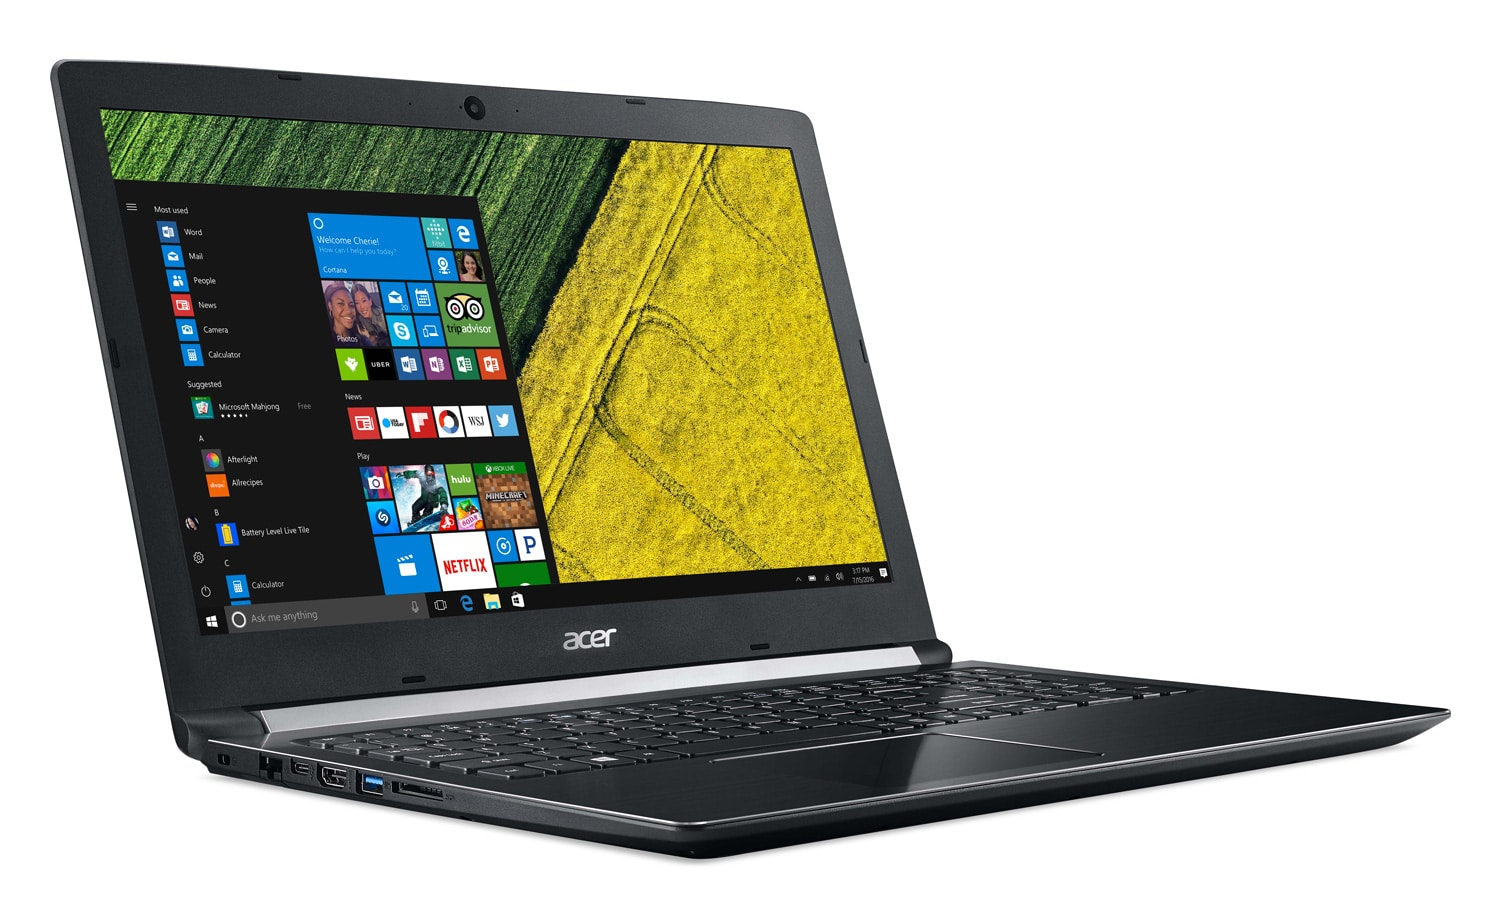 Acer Aspire A515-51G-545S, PC portable 15 pouces Full IPS Quad i5 MX130 à 599€